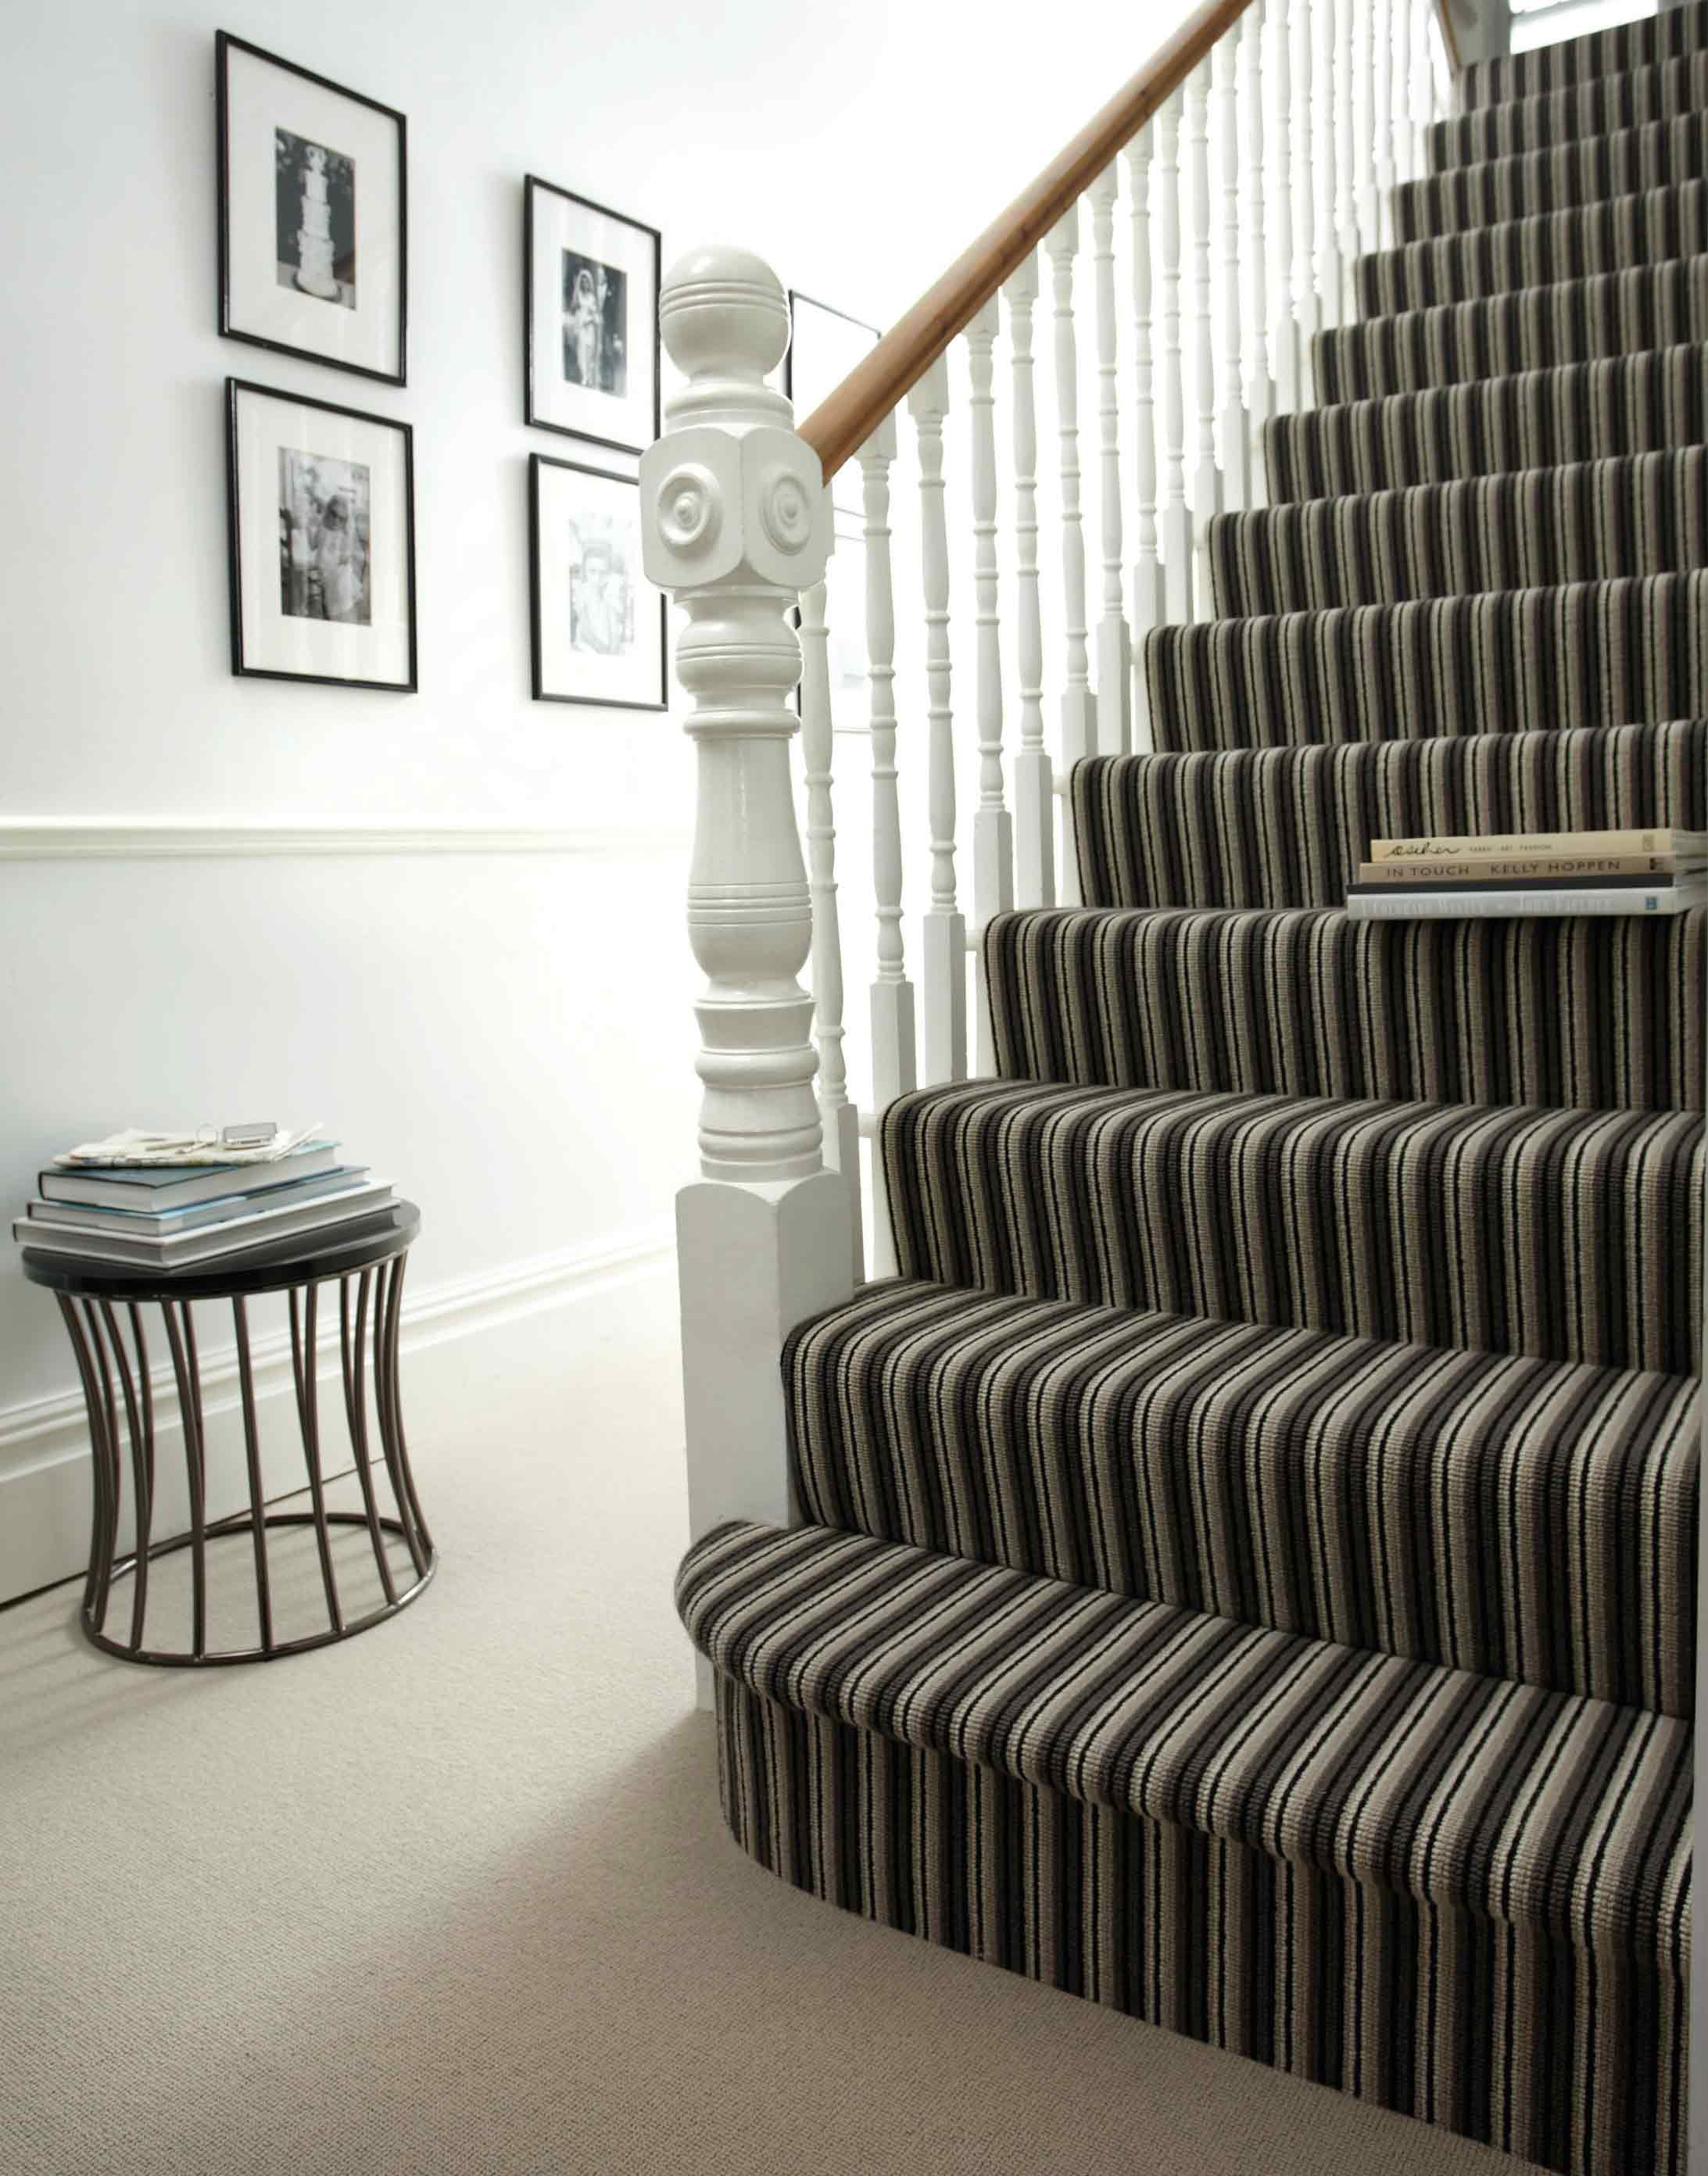 Key Factors Which Make A Carpet Ideal For Stair Installations   Durable Carpet For Stairs   High Traffic   Flower Design   Low Pile   Masland   Stair Treads